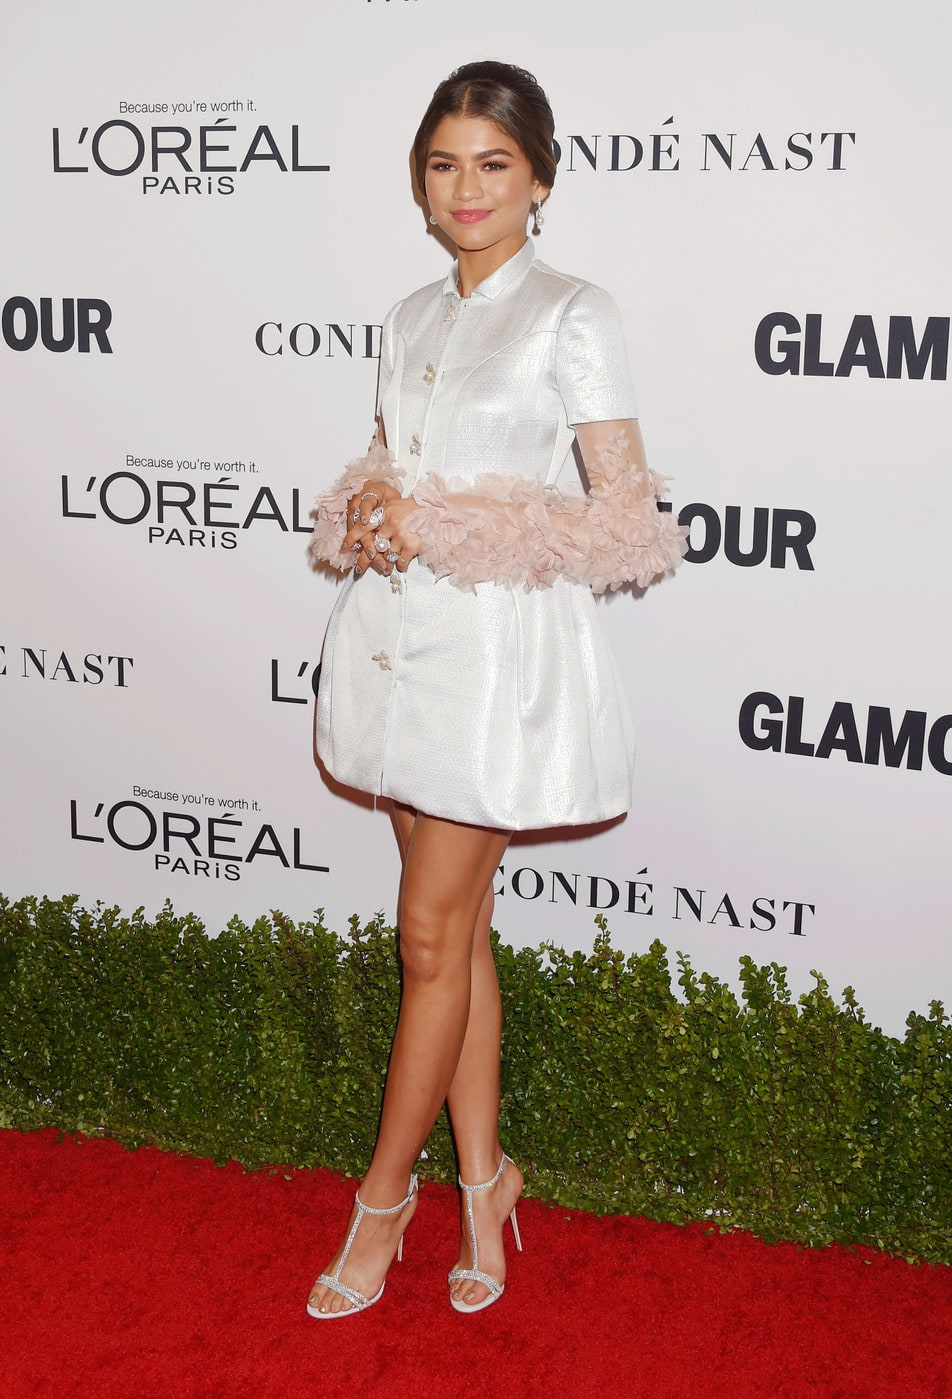 Zendaya at the 2016 Glamour Women of the Year awards wearing a white bubble hem dress with floral sleeves, diamond rings on every finger, and strappy silver heels